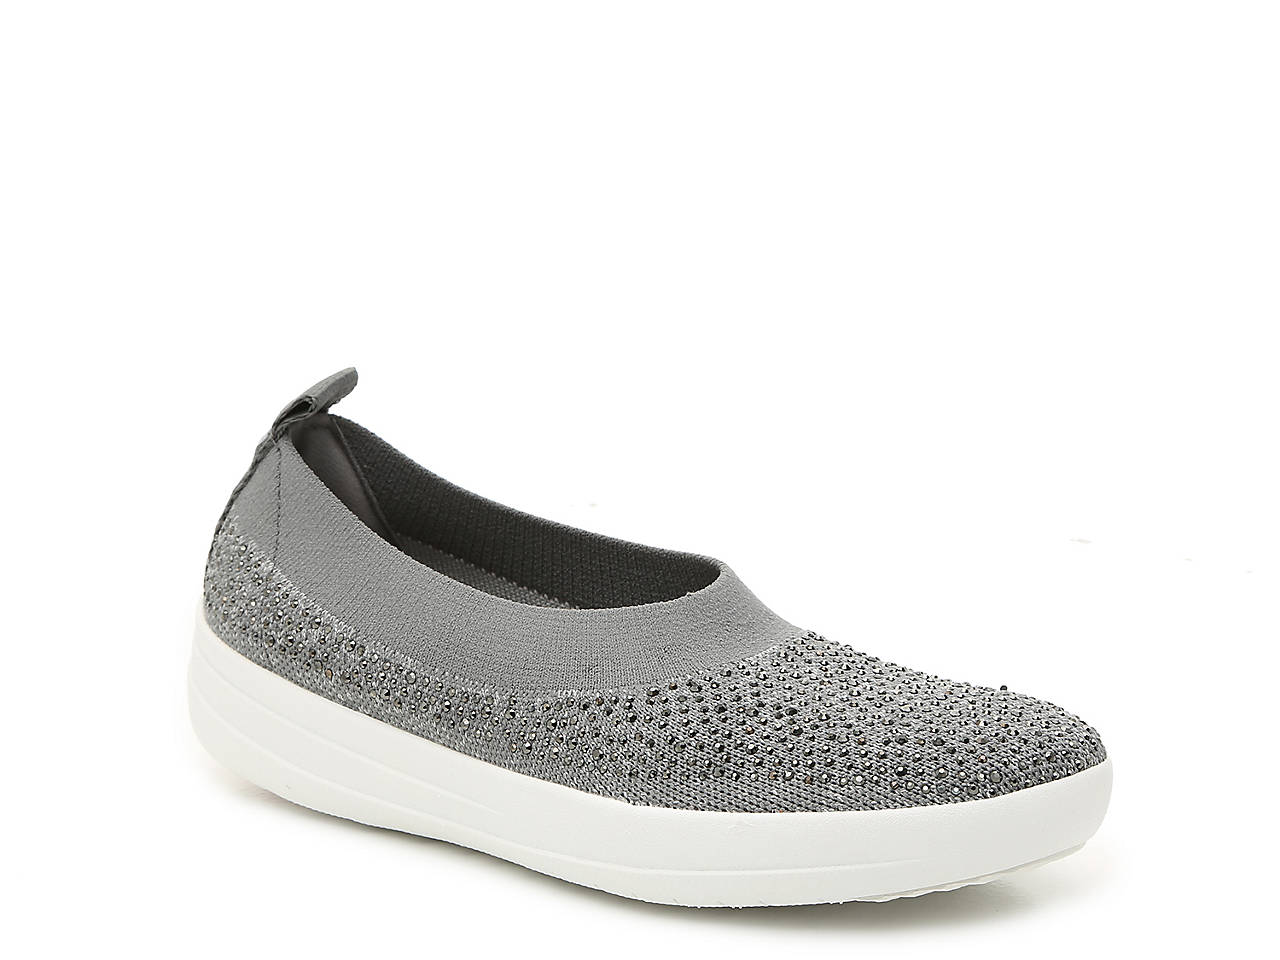 5561d7149d80 FitFlop Uberknit Ballerina Crystal Slip-On Women s Shoes